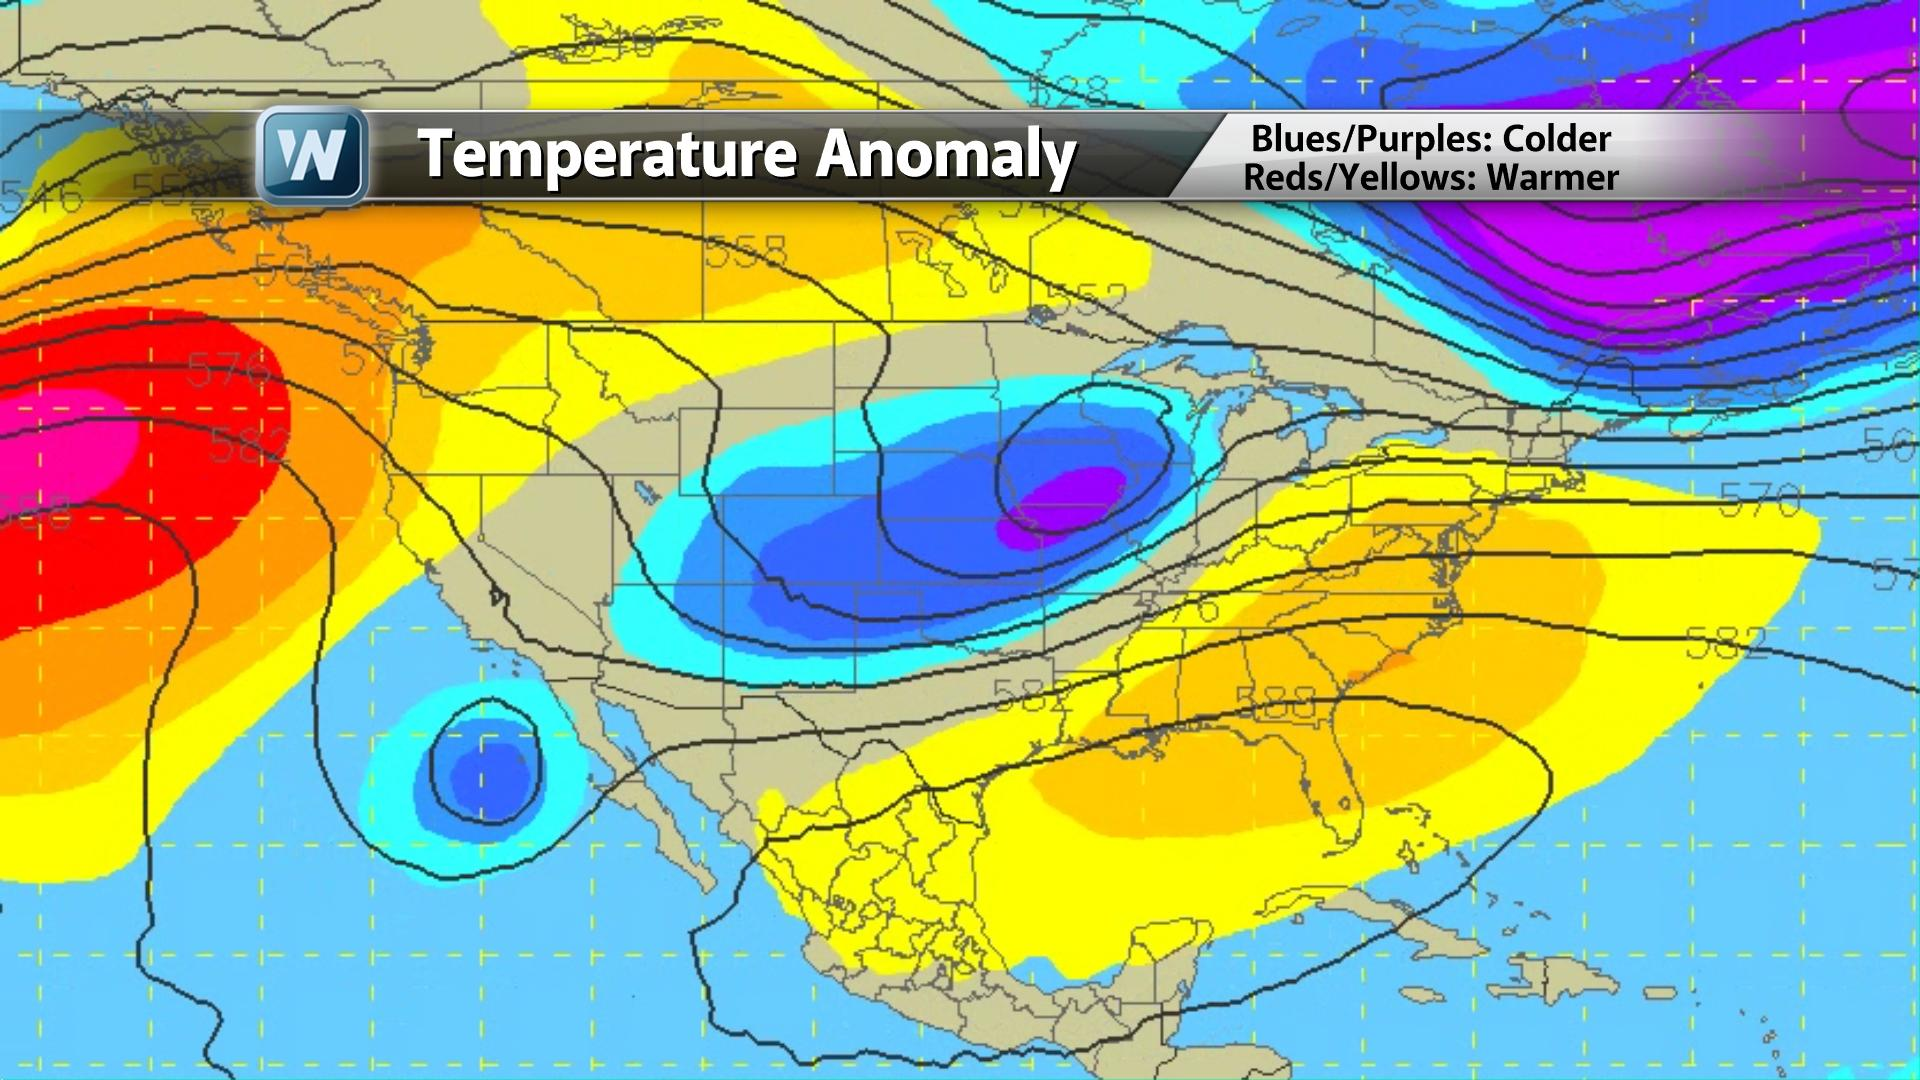 Temperature Anomaly Next Week